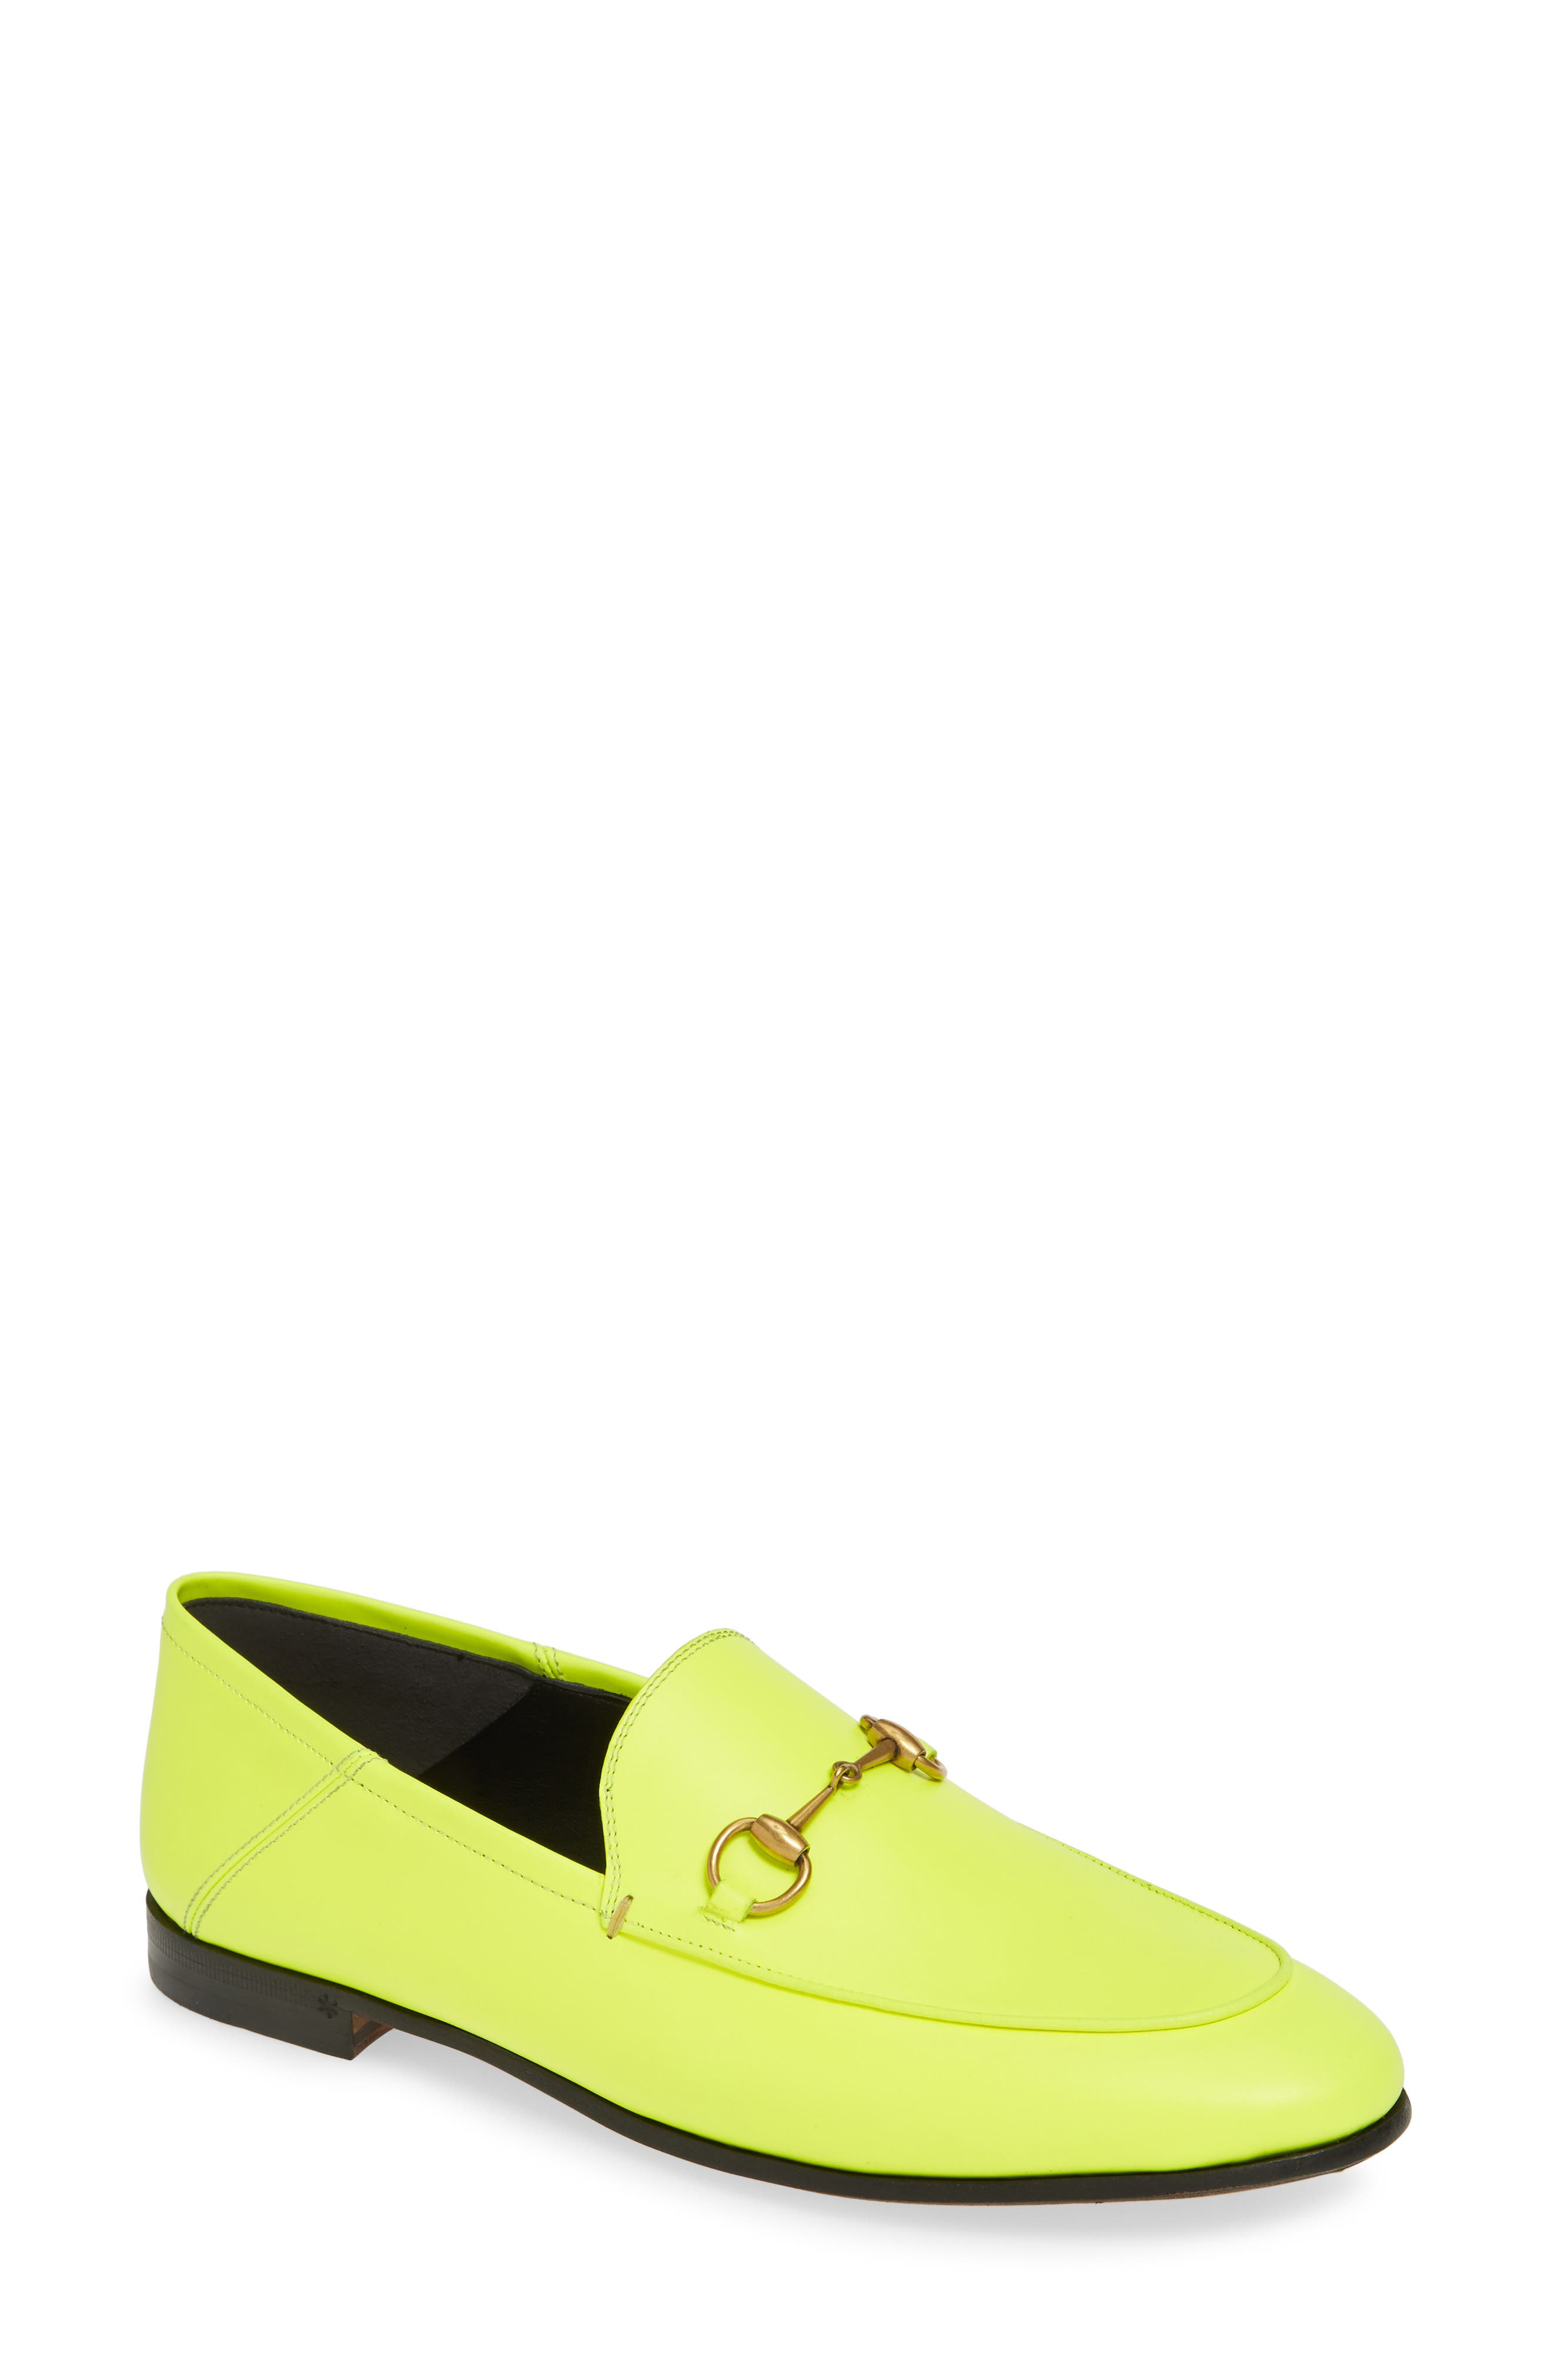 GUCCI, Brixton Convertible Loafer, Main thumbnail 1, color, YELLOW FLUO LEATHER